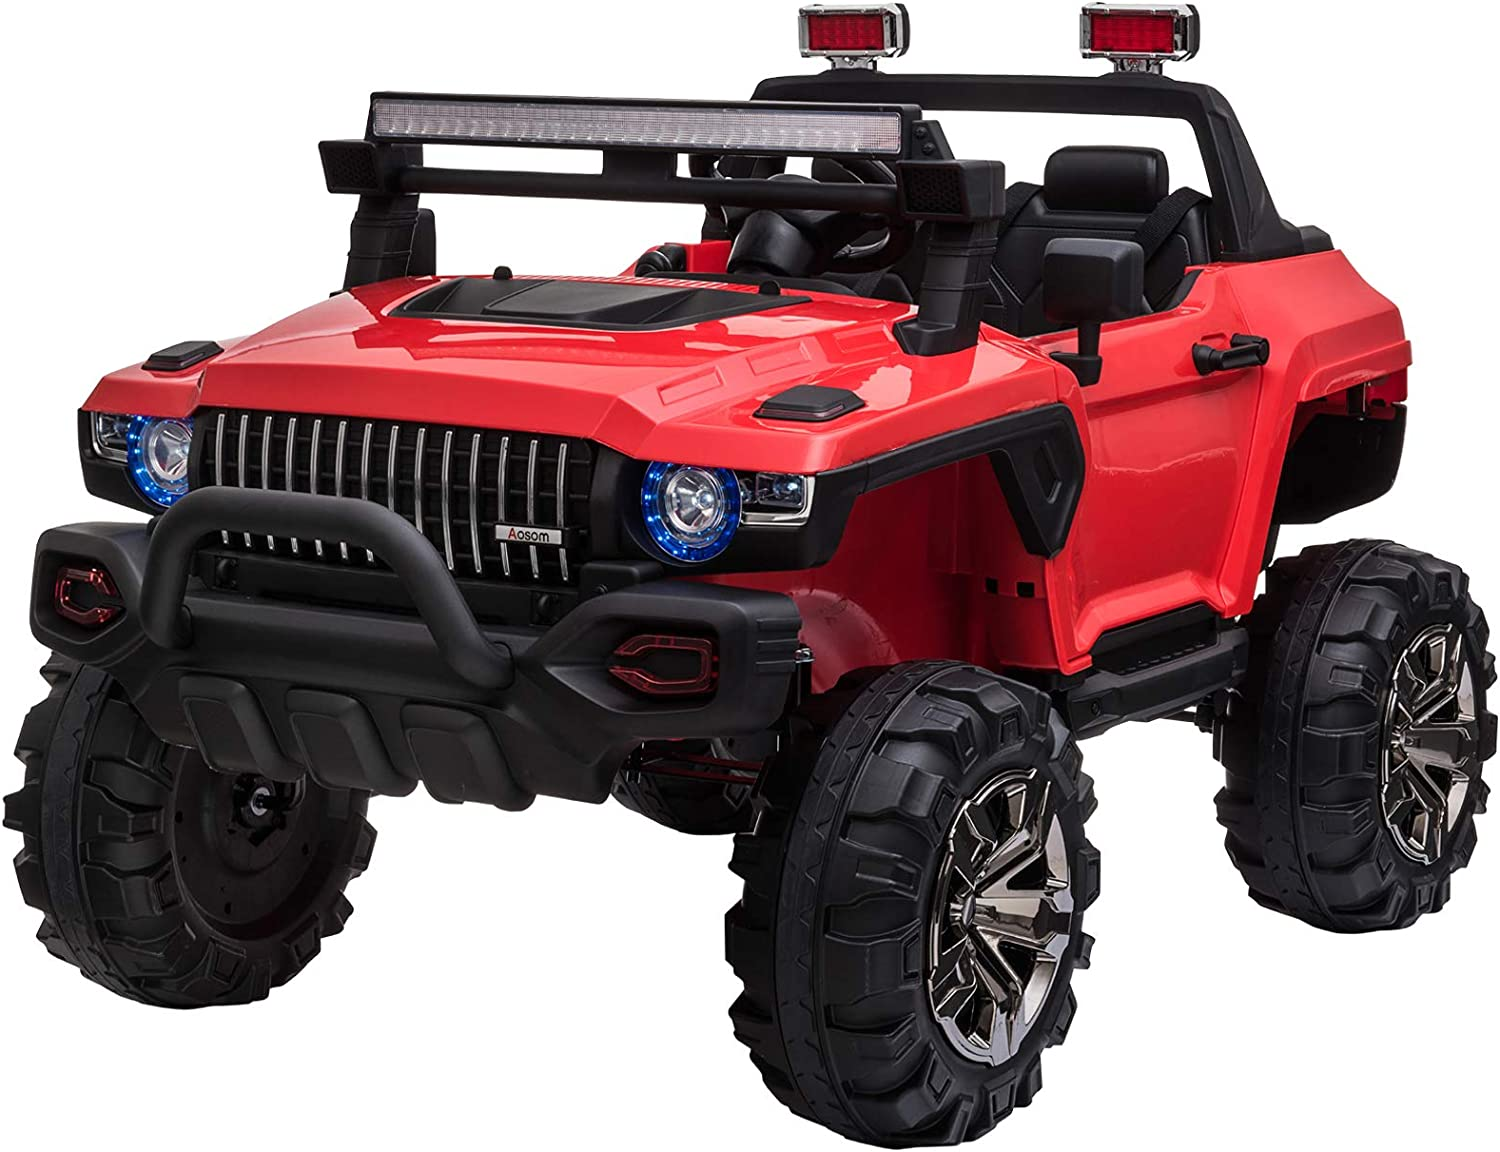 Amazon.com: Aosom 12V Kids Electric 2-Seater Ride On Police Car SUV Truck  Toy with Parental Remote Control, Red: Toys & Games